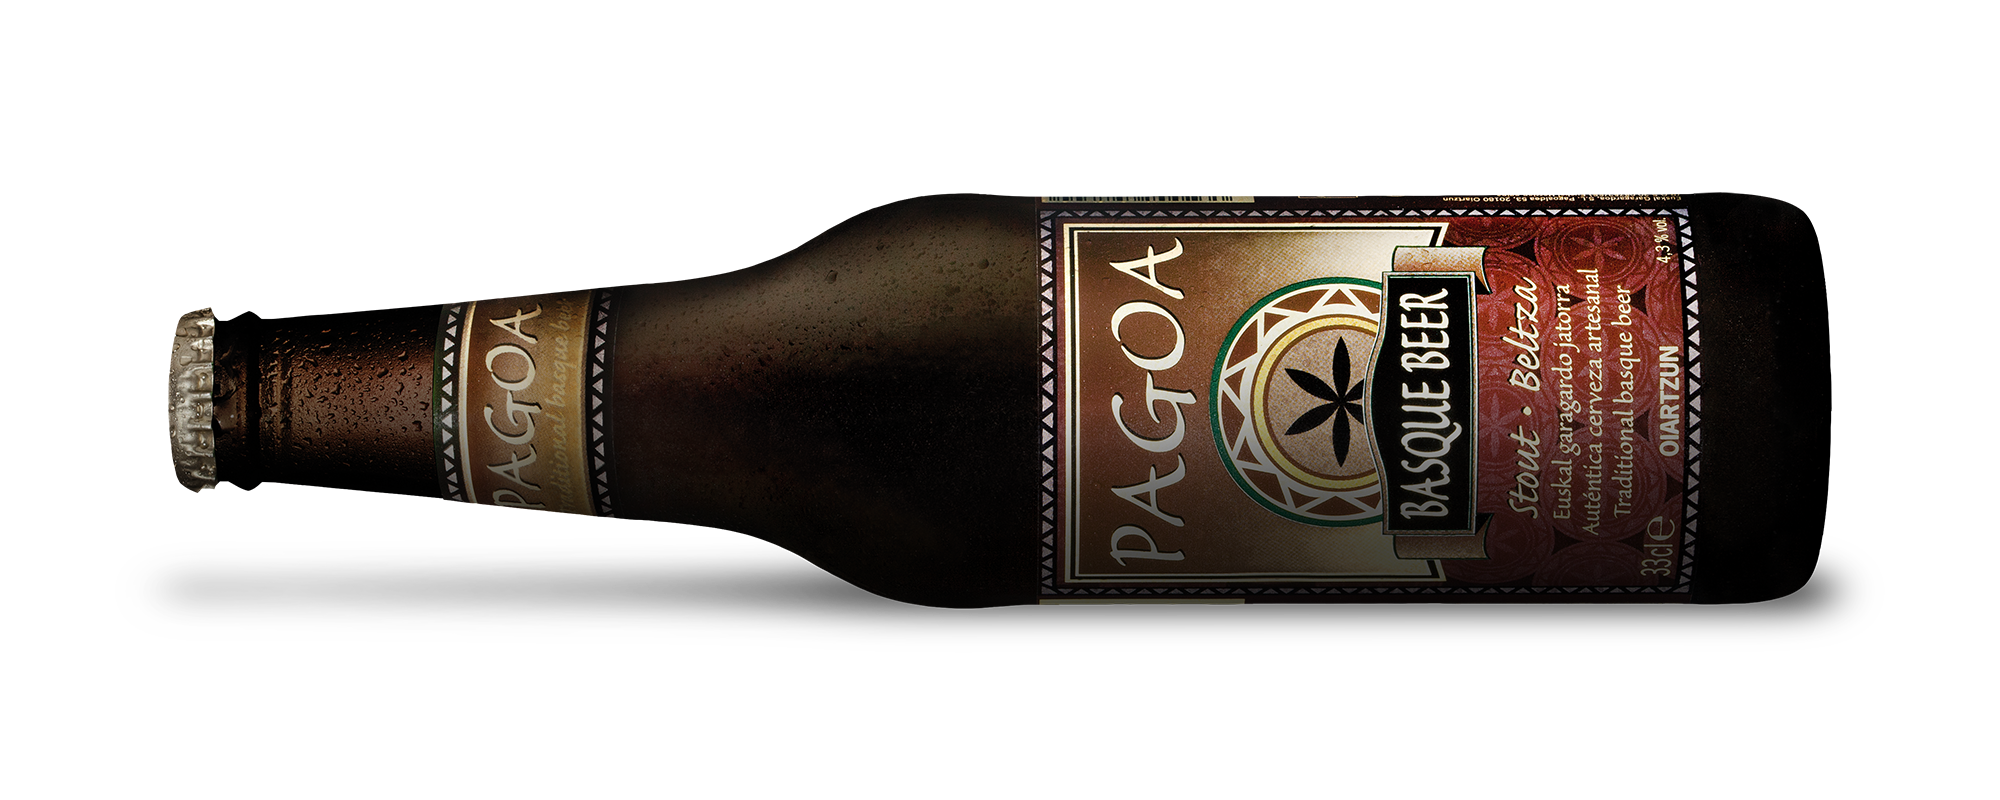 Pagoa Basque Beer Stout Beltza